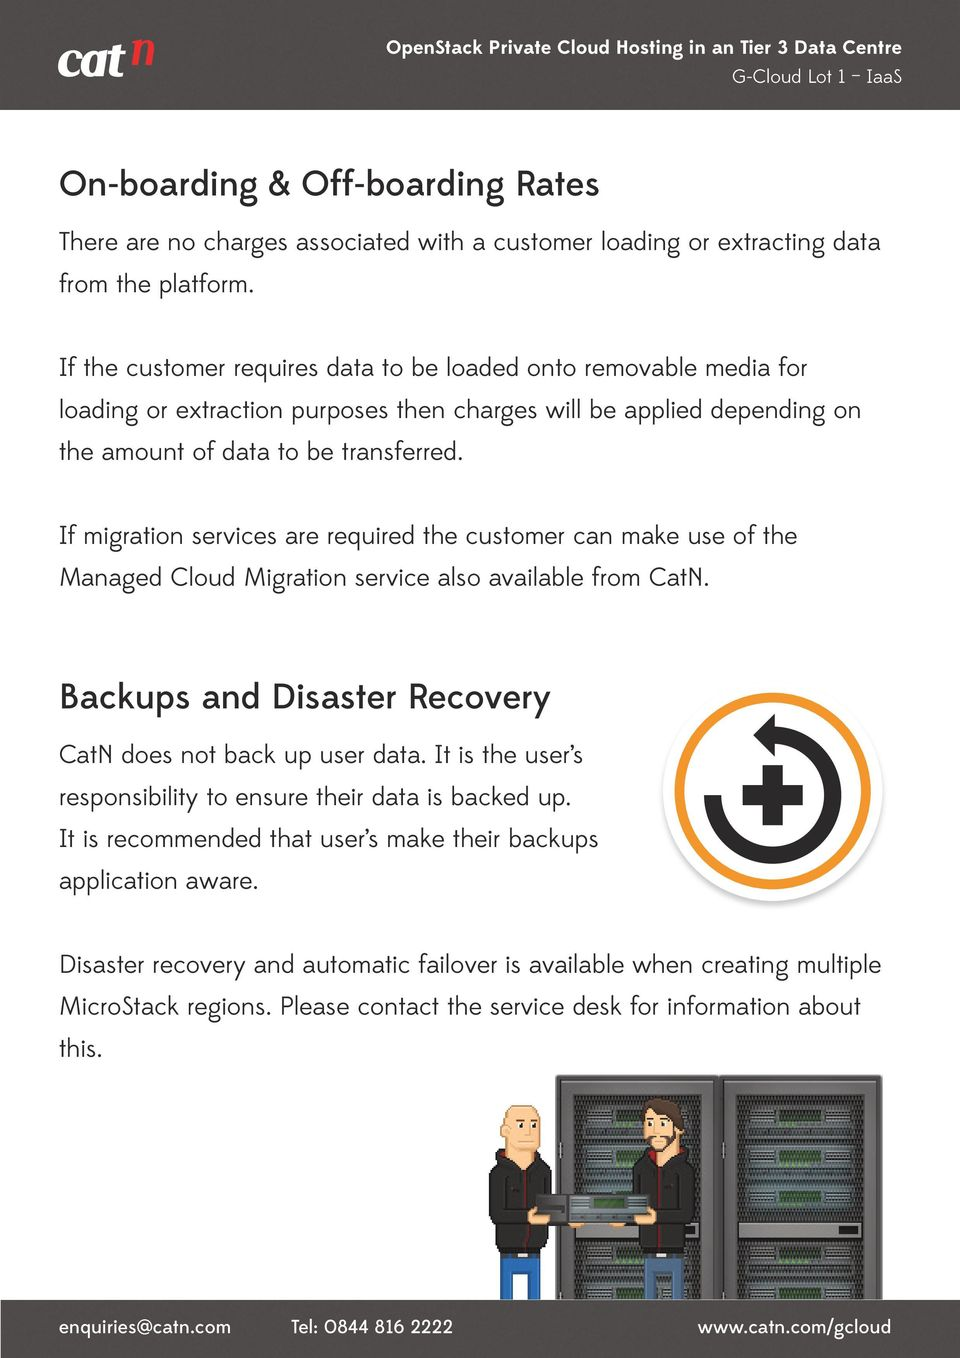 If migration services are required the customer can make use of the Managed Cloud Migration service also available from CatN. Backups and Disaster Recovery CatN does not back up user data.